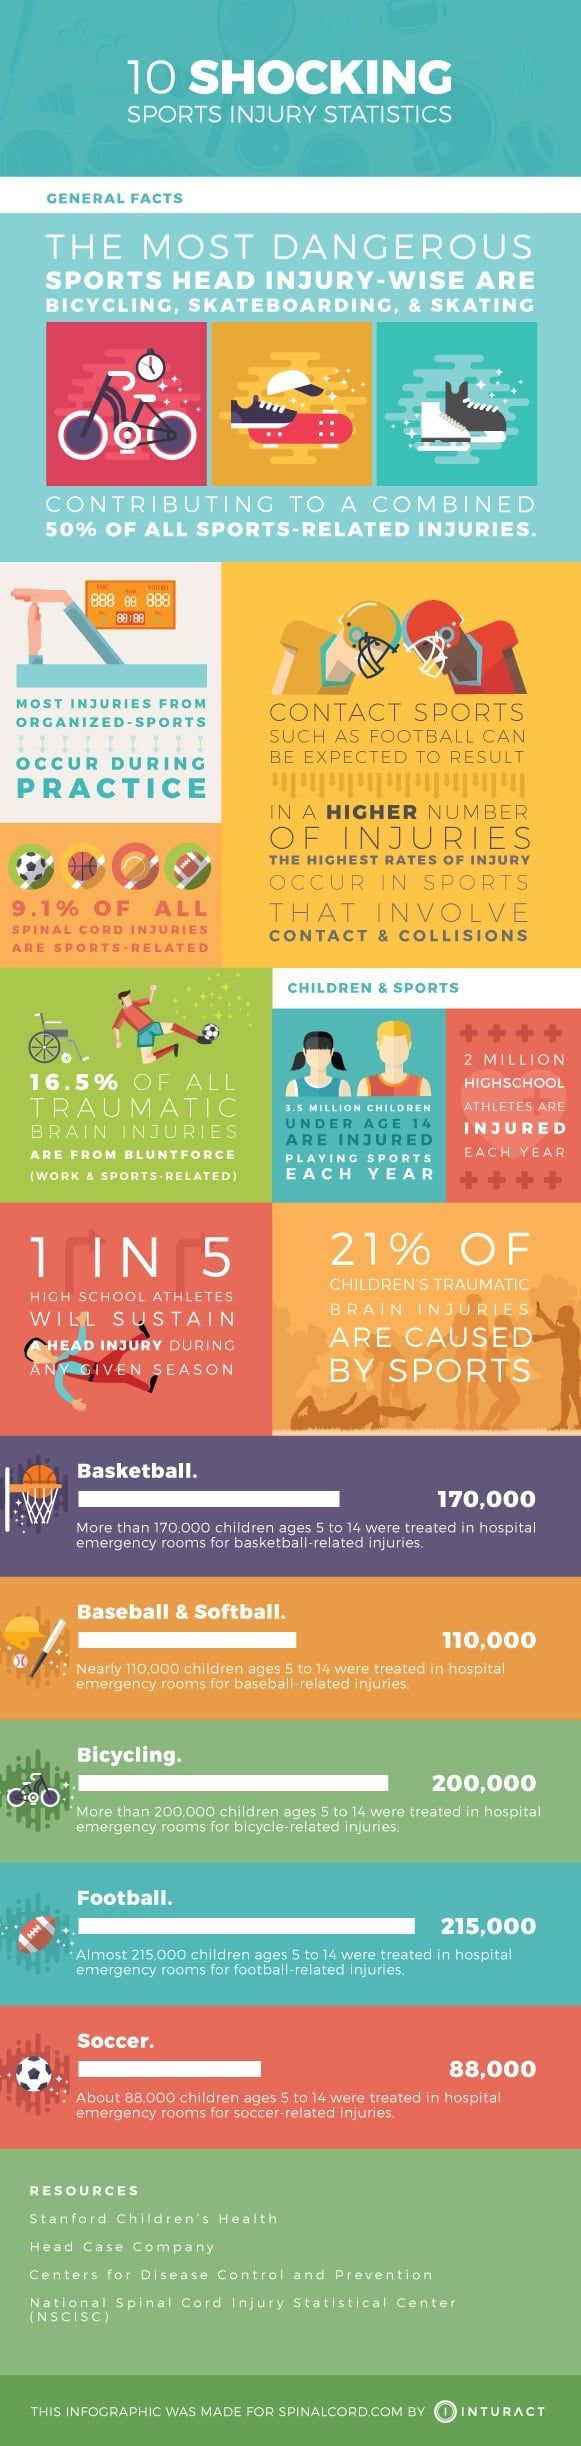 10 Shocking Spinal Cord Injury Statistics Infographic